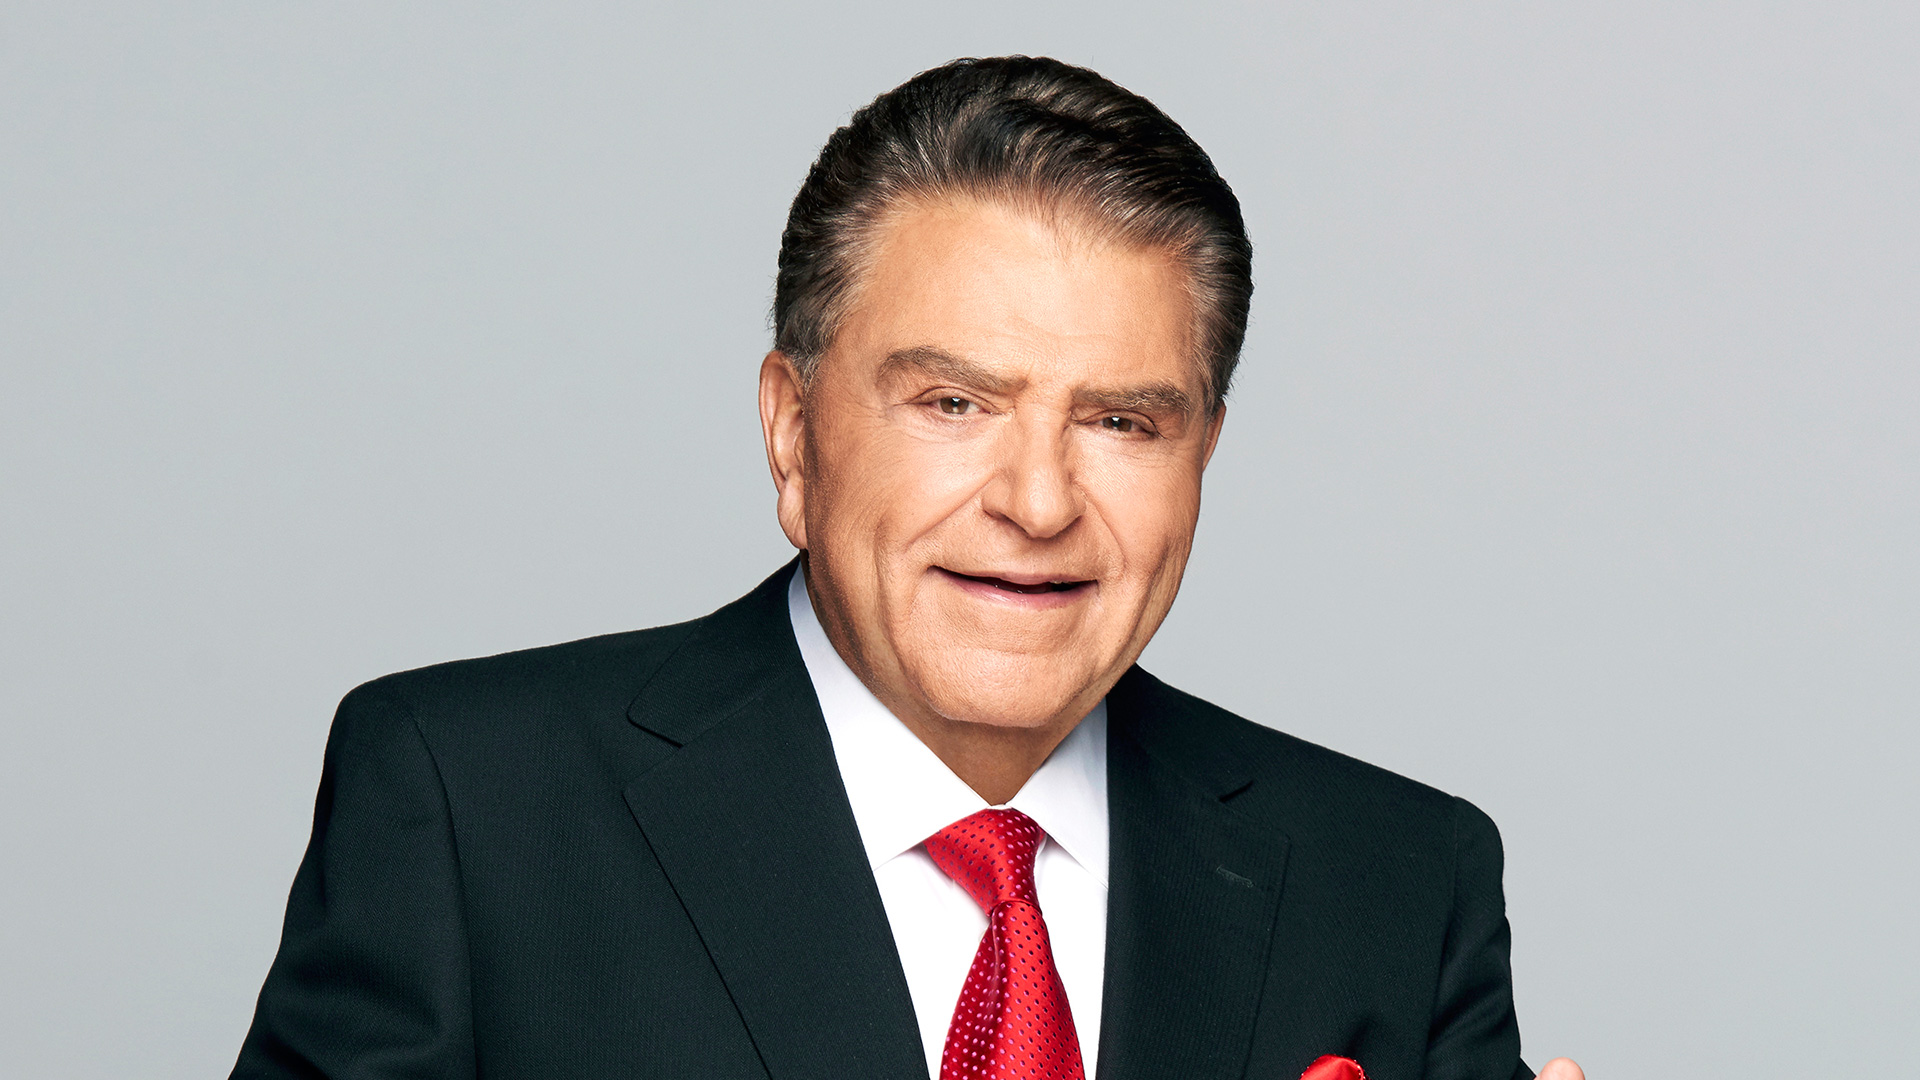 Don Francisco aborda los mitos de la diabetes tipo 2 en la comunidad hispana | Telemundo